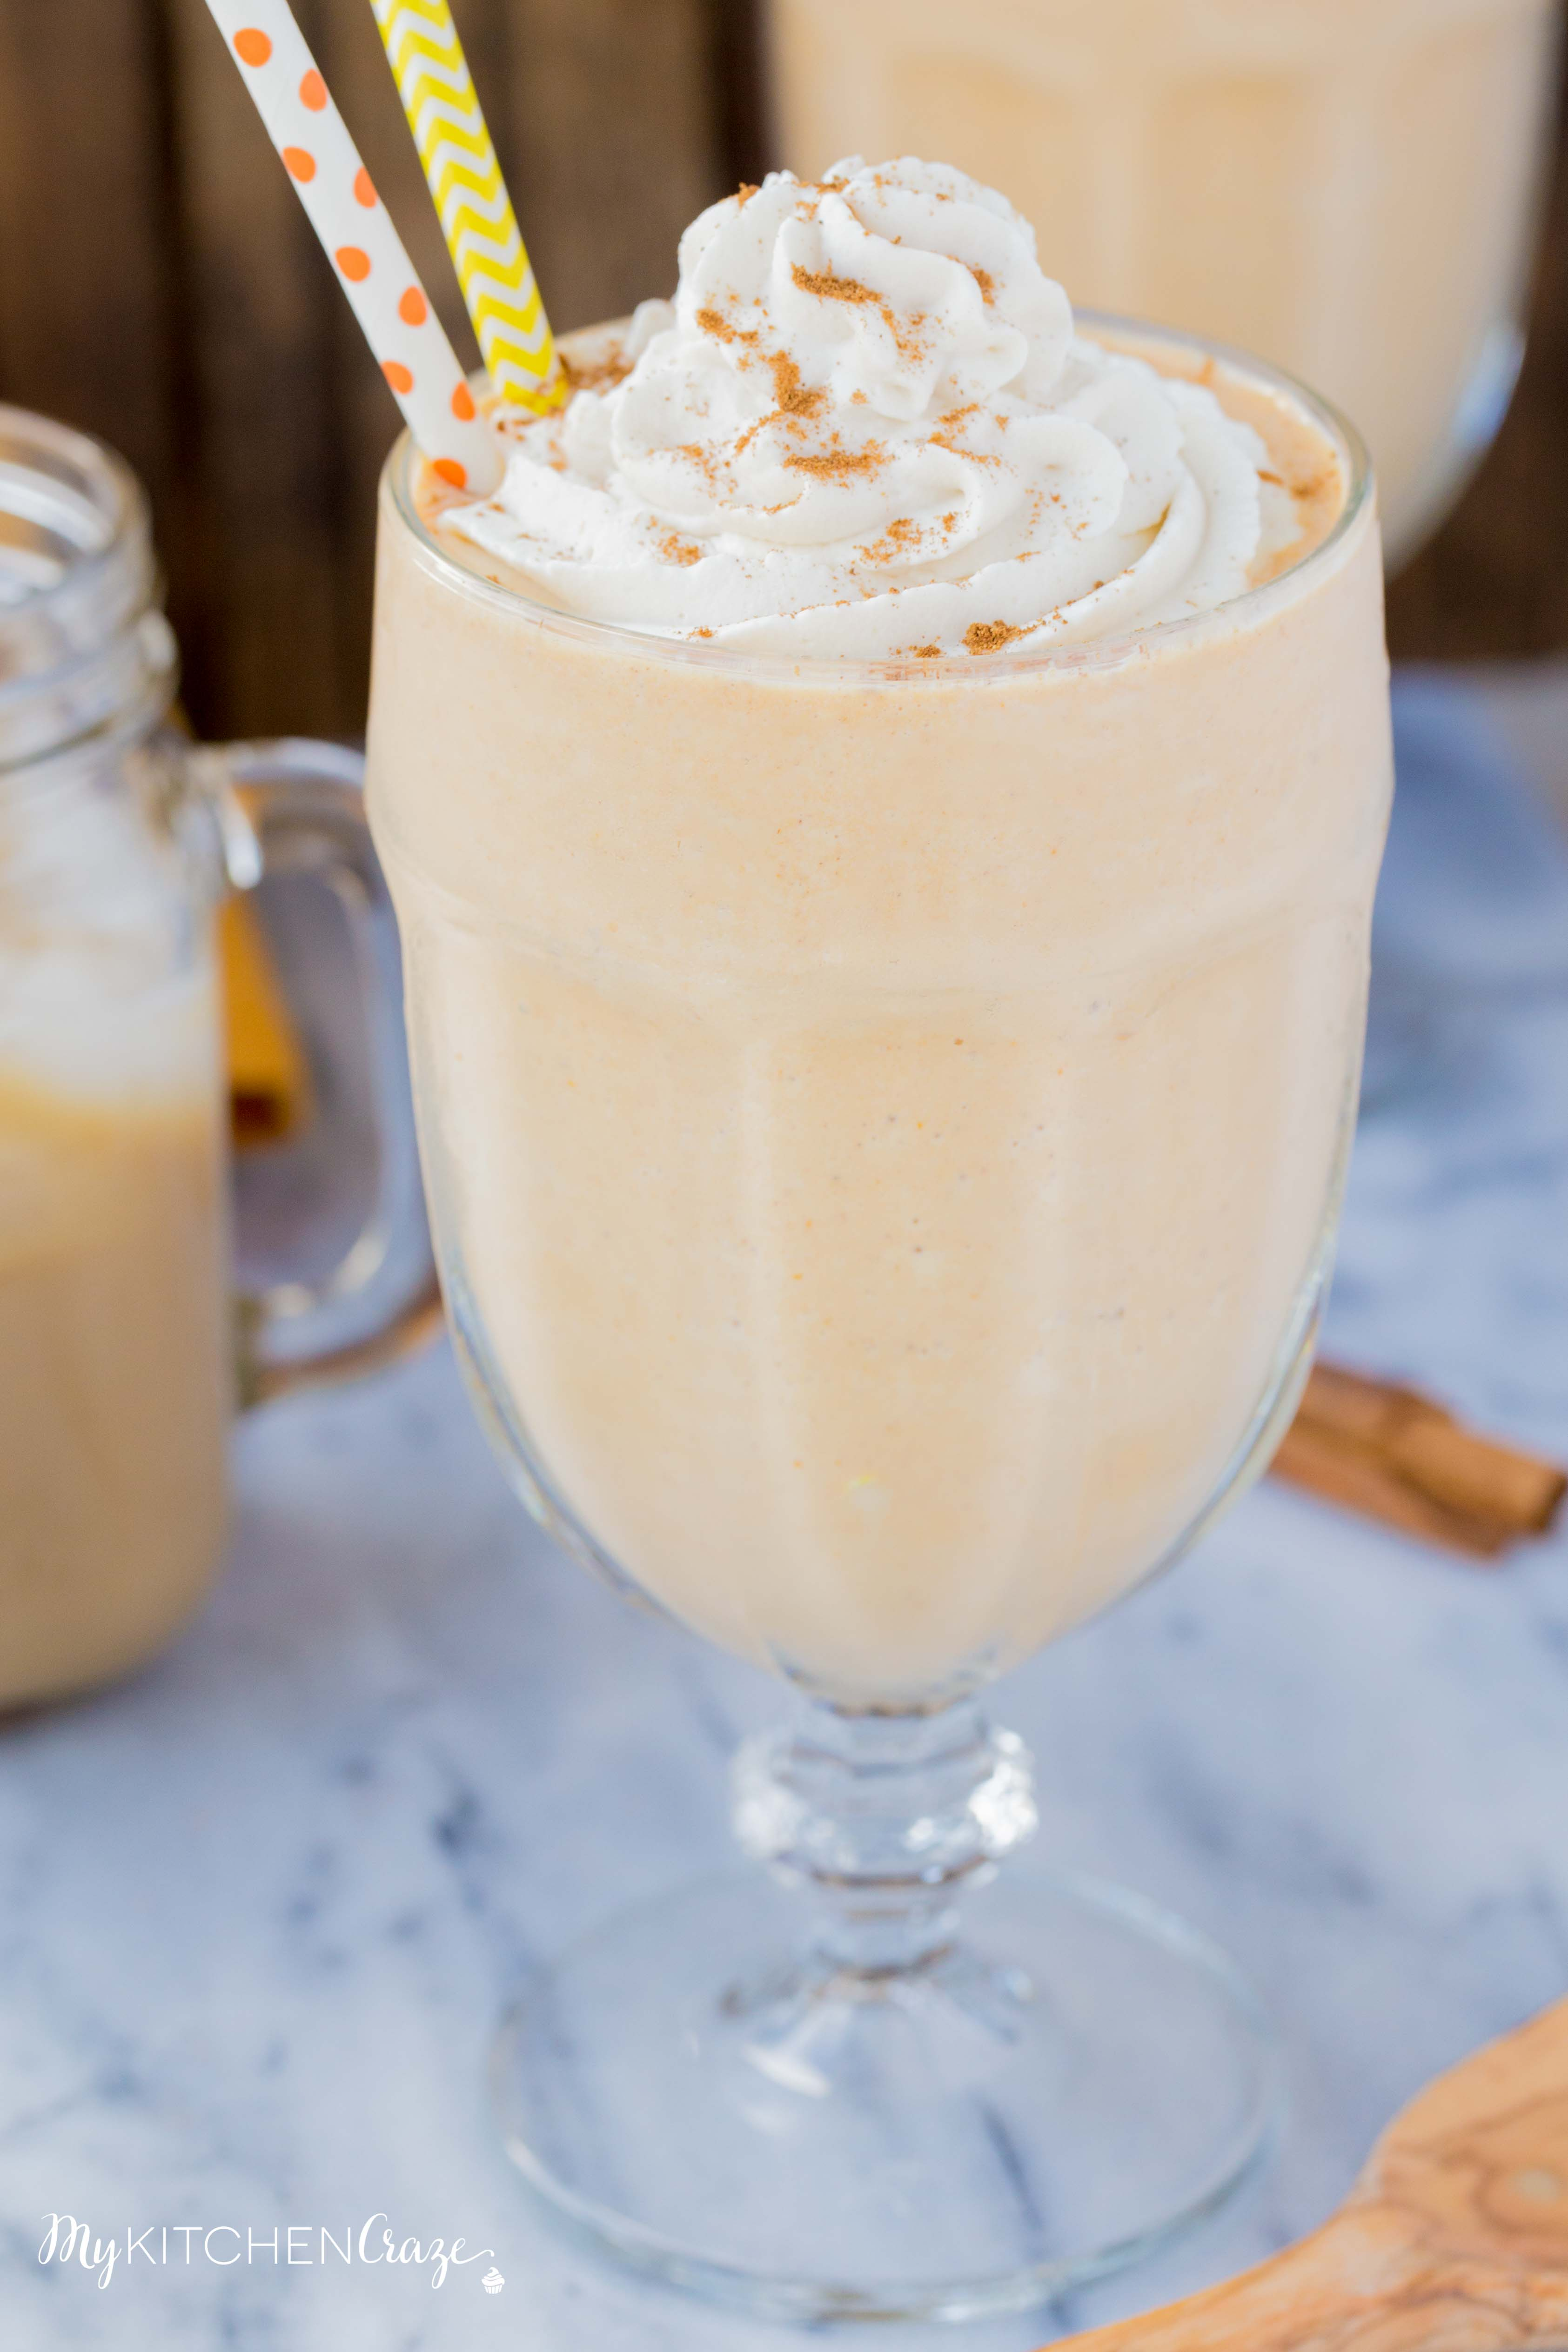 Pumpkin Spice Milkshake ~ mykitchencraze.com ~ Start your Fall season off right and make this delicious Pumpkin Spice Milkshake. Filled with all the pumpkin flavors, it's like a piece of pumpkin pie in a drink. Yum!